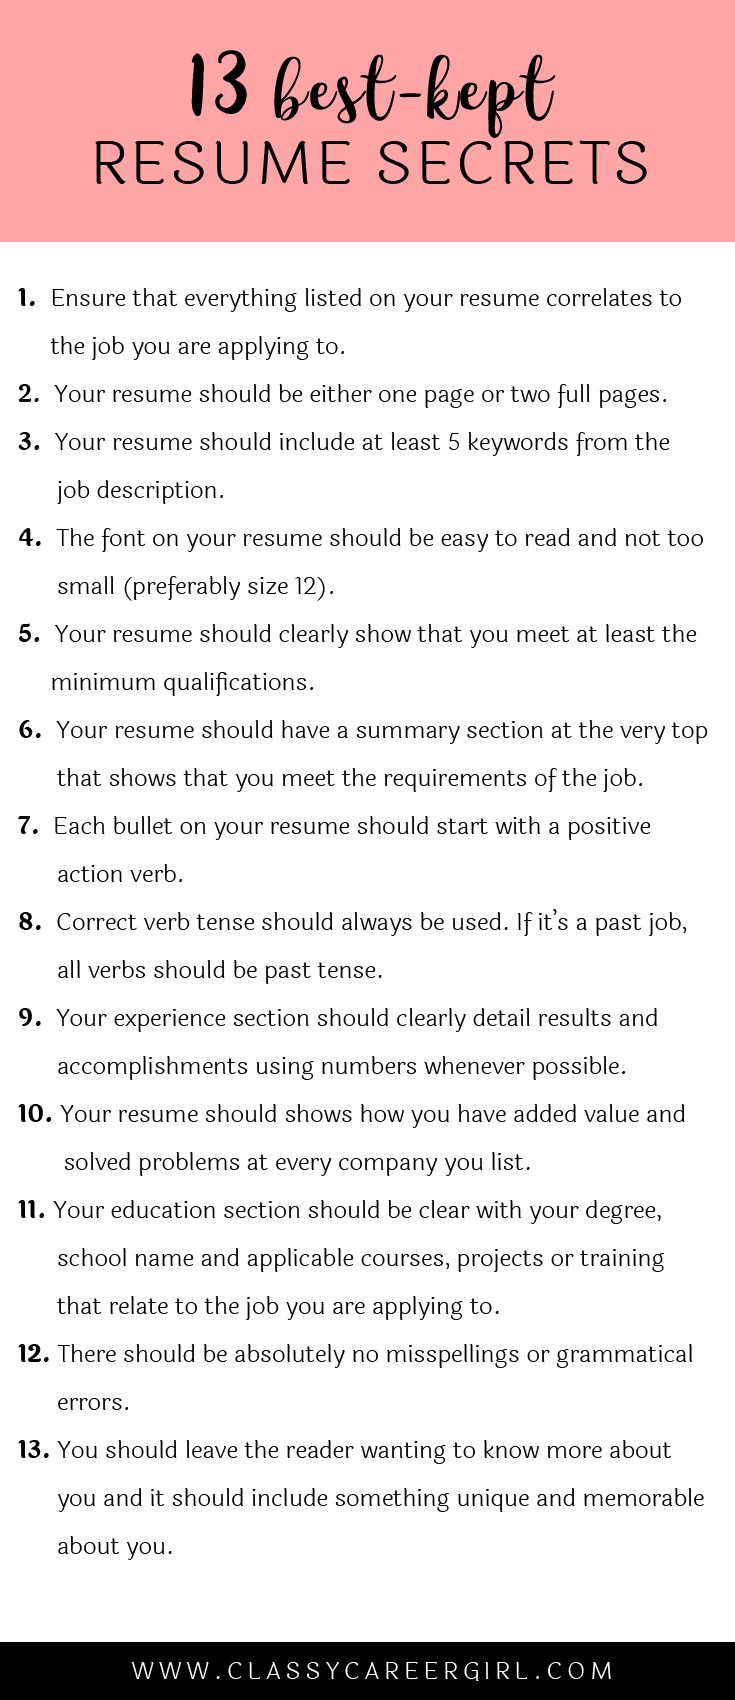 Opposenewapstandardsus  Pretty  Ideas About Resume On Pinterest  Cv Format Resume Cv And  With Great Some Hiring Managers Will Toss Your Resume Out If You Dont Know These  With Beautiful Internship Resume Examples Also Free Resume Template Word In Addition Best Resume Layout And Production Manager Resume As Well As Sample Resume Objective Additionally Good Resume Example From Pinterestcom With Opposenewapstandardsus  Great  Ideas About Resume On Pinterest  Cv Format Resume Cv And  With Beautiful Some Hiring Managers Will Toss Your Resume Out If You Dont Know These  And Pretty Internship Resume Examples Also Free Resume Template Word In Addition Best Resume Layout From Pinterestcom